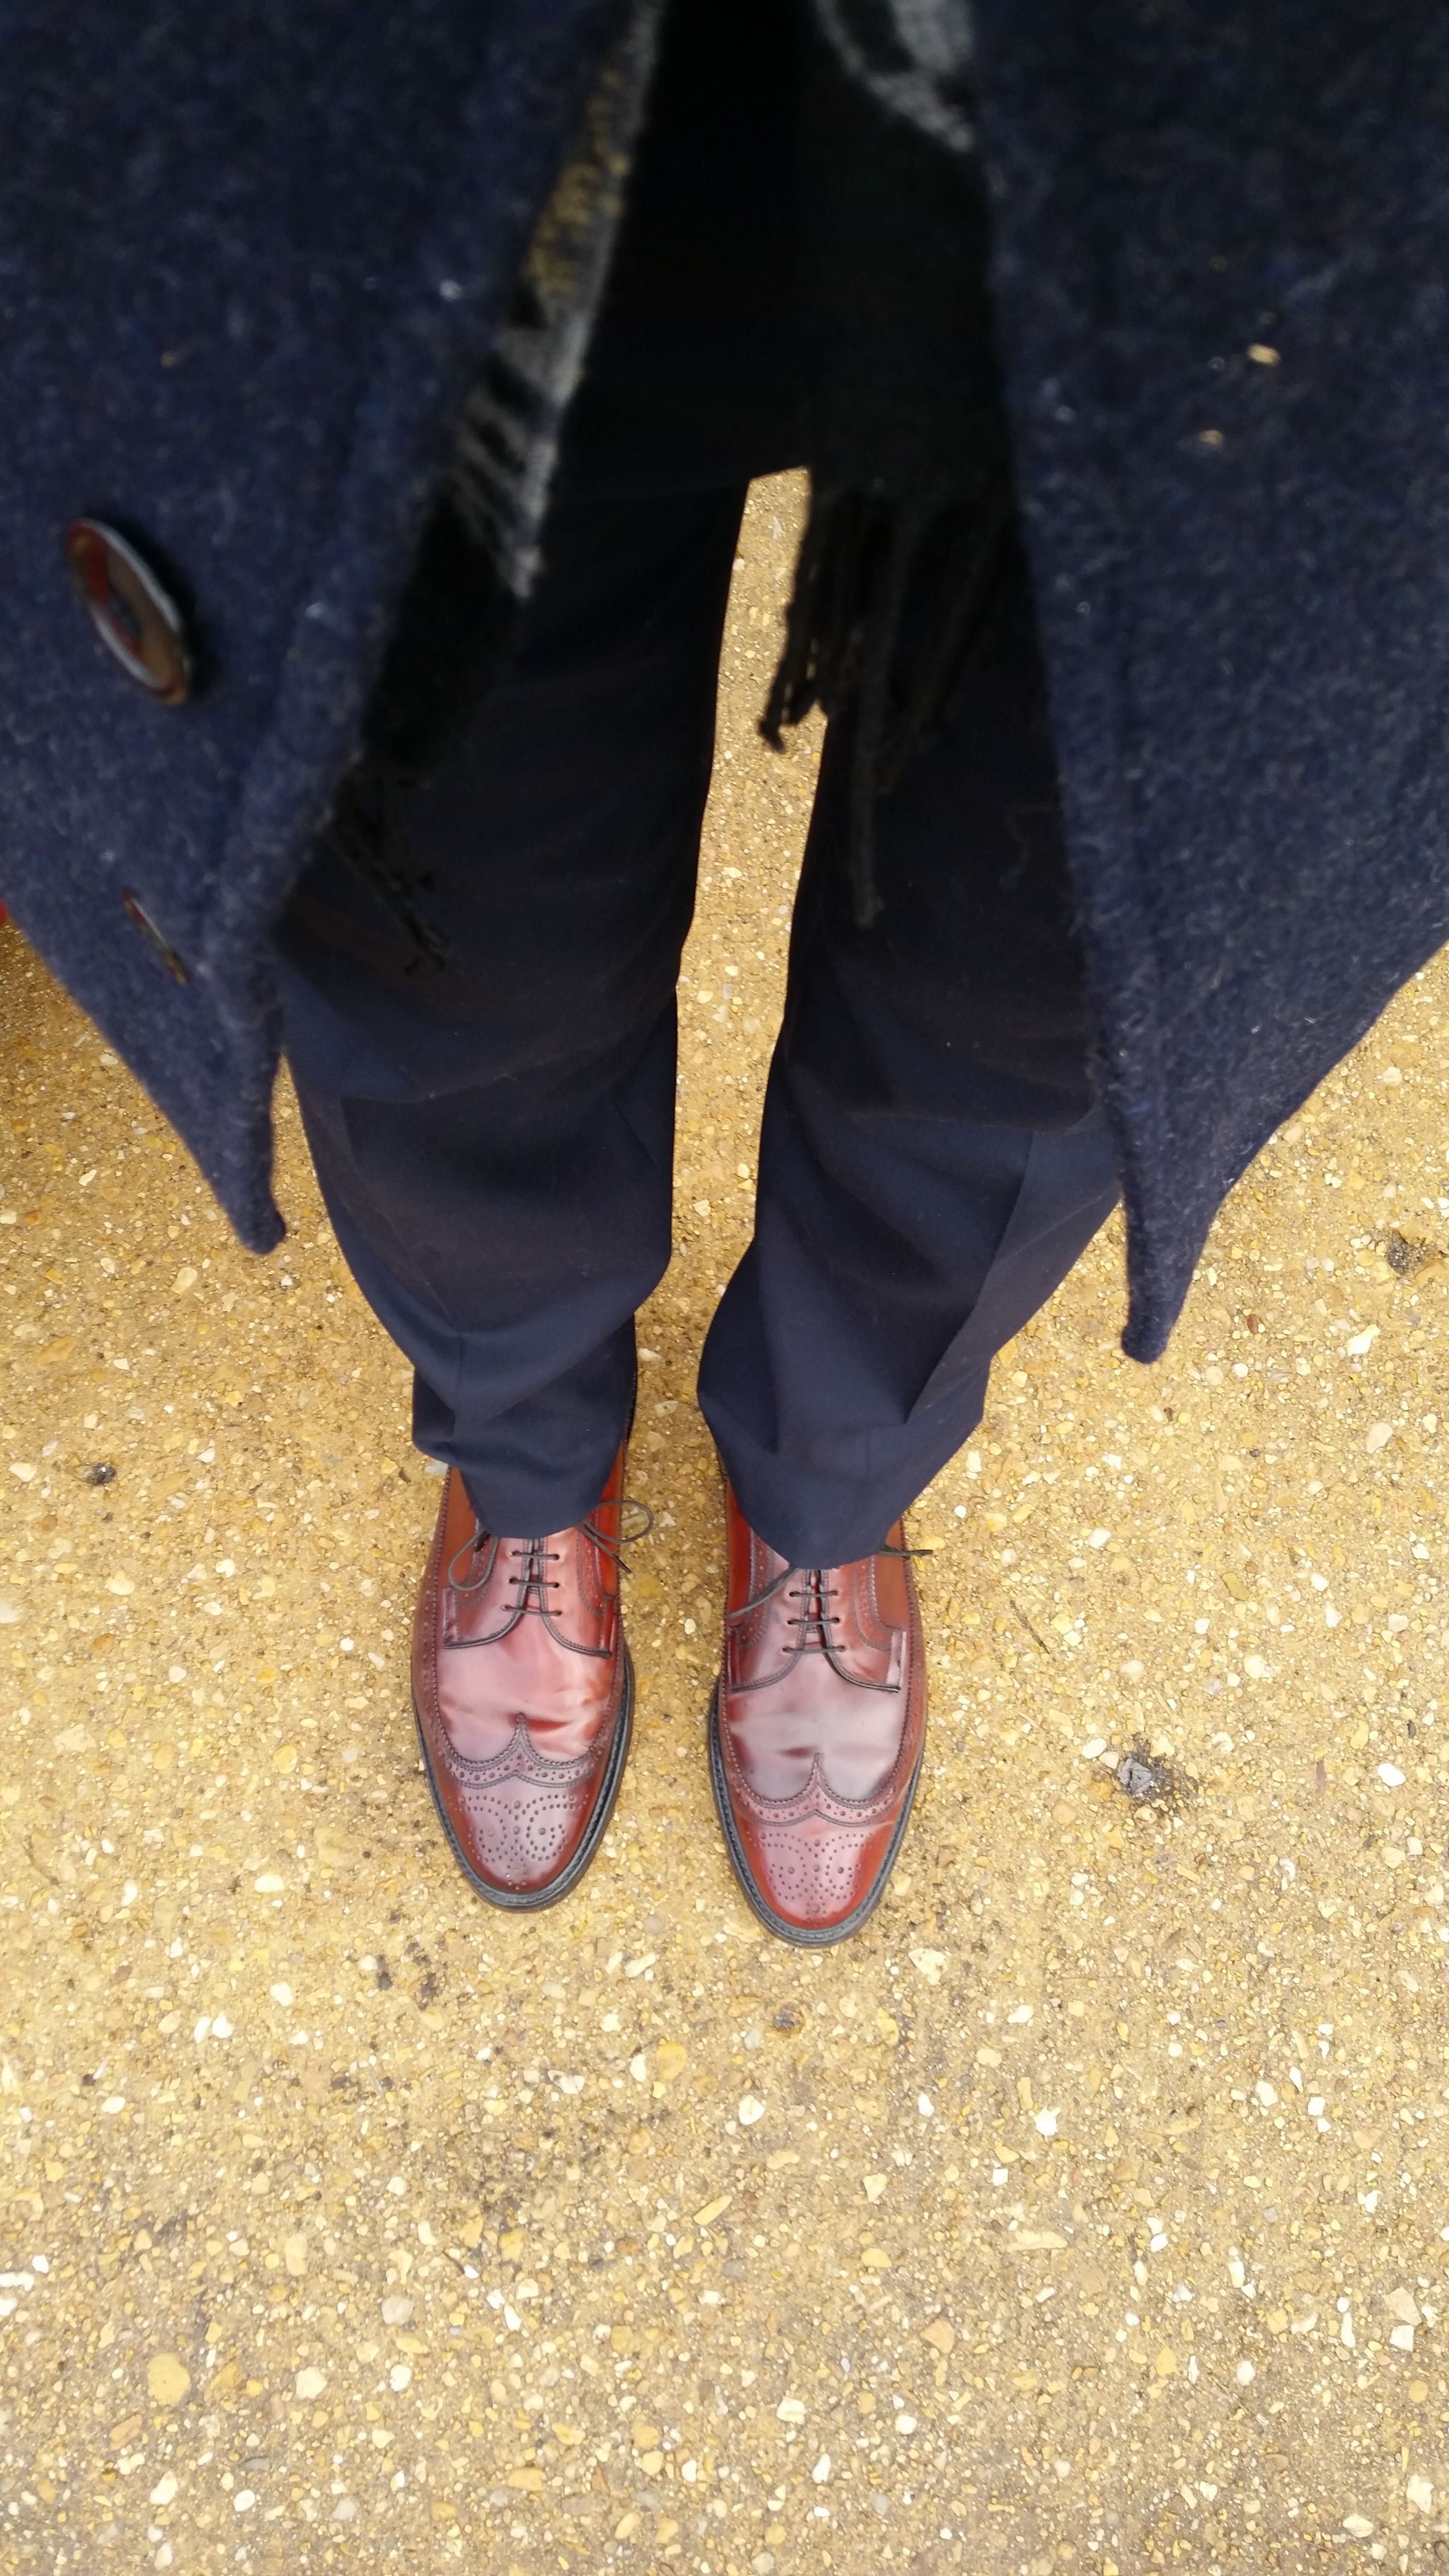 YoungSweet's photos in Allen Edmonds Appreciation Thread 2016 - News, Pictures, Sizing, Accessories, Clothing, etc